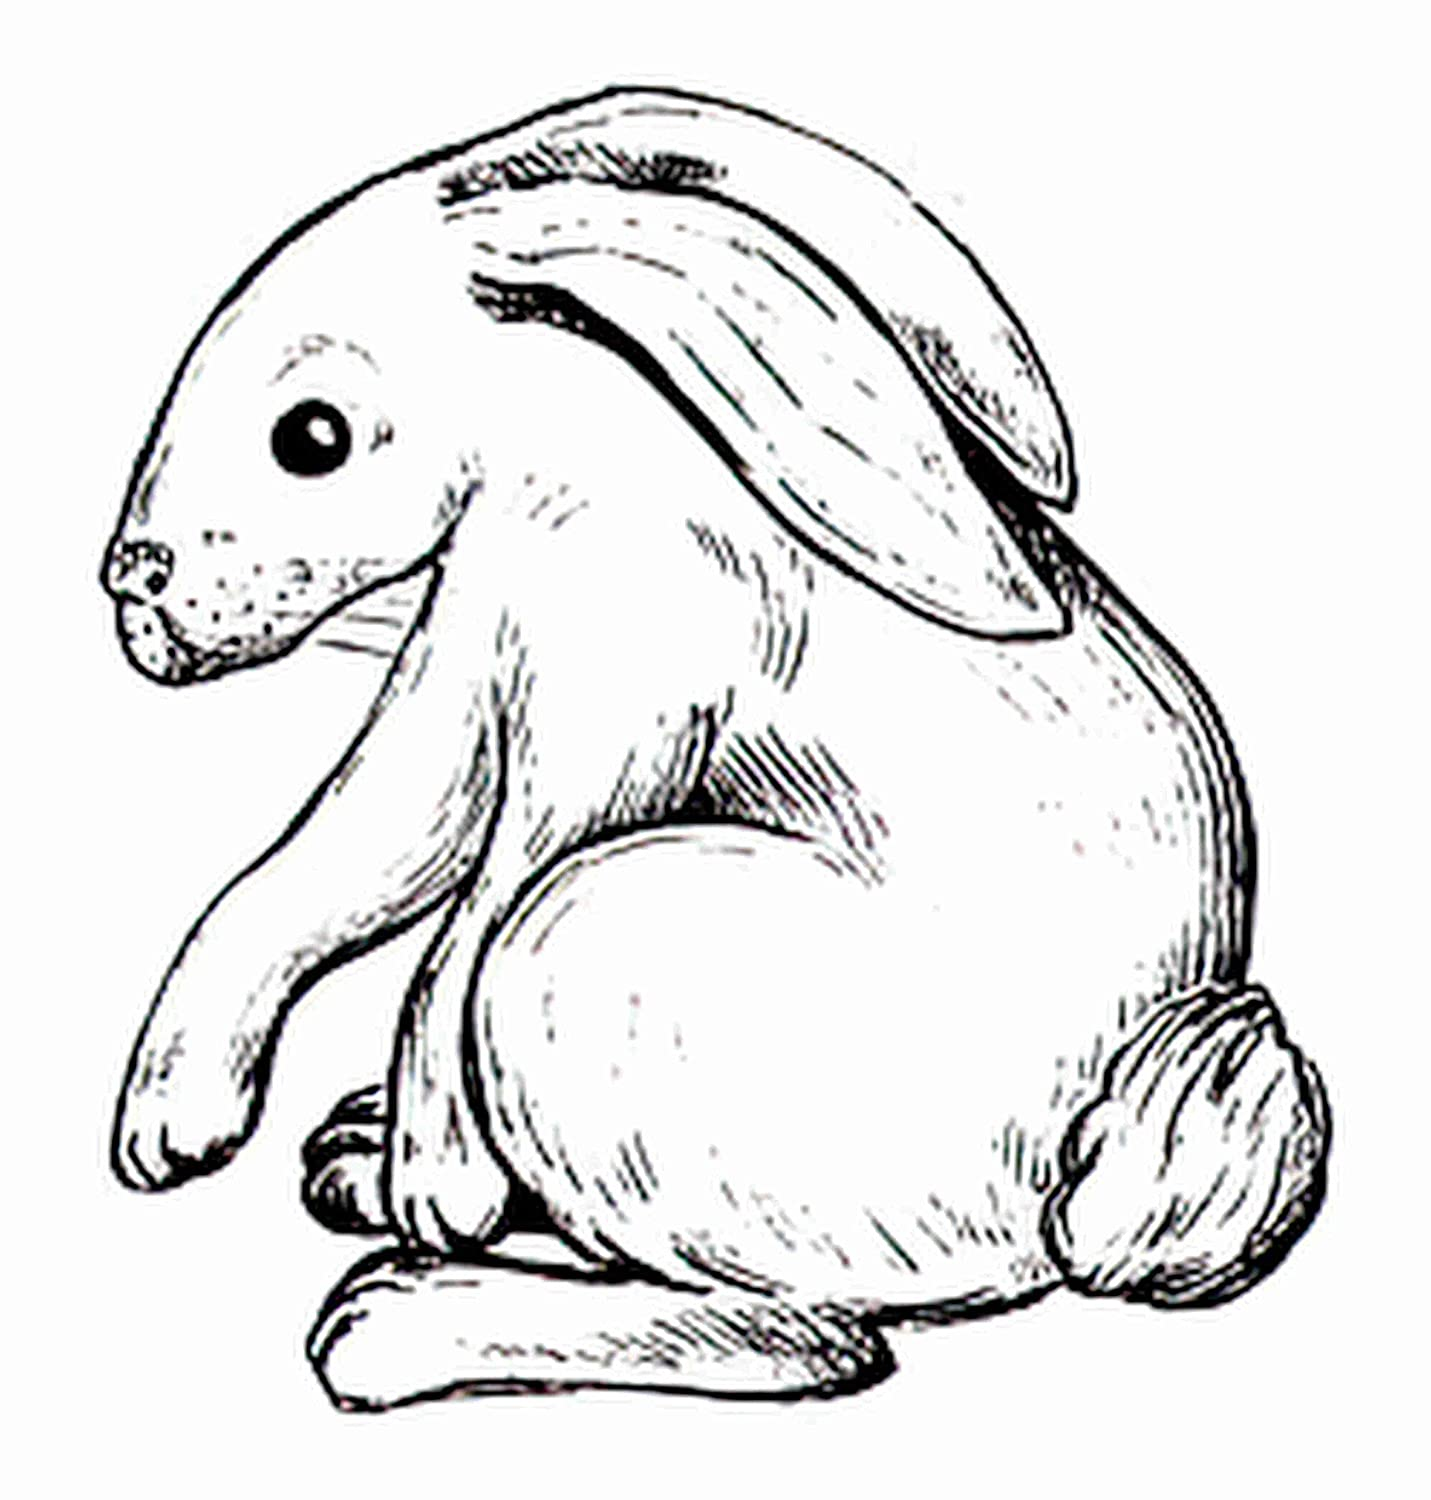 Temporary Tattoos 6 Sheets Cute Hare Rabbit Anima 70% OFF Outlet Bunny OFFicial site Wildlife